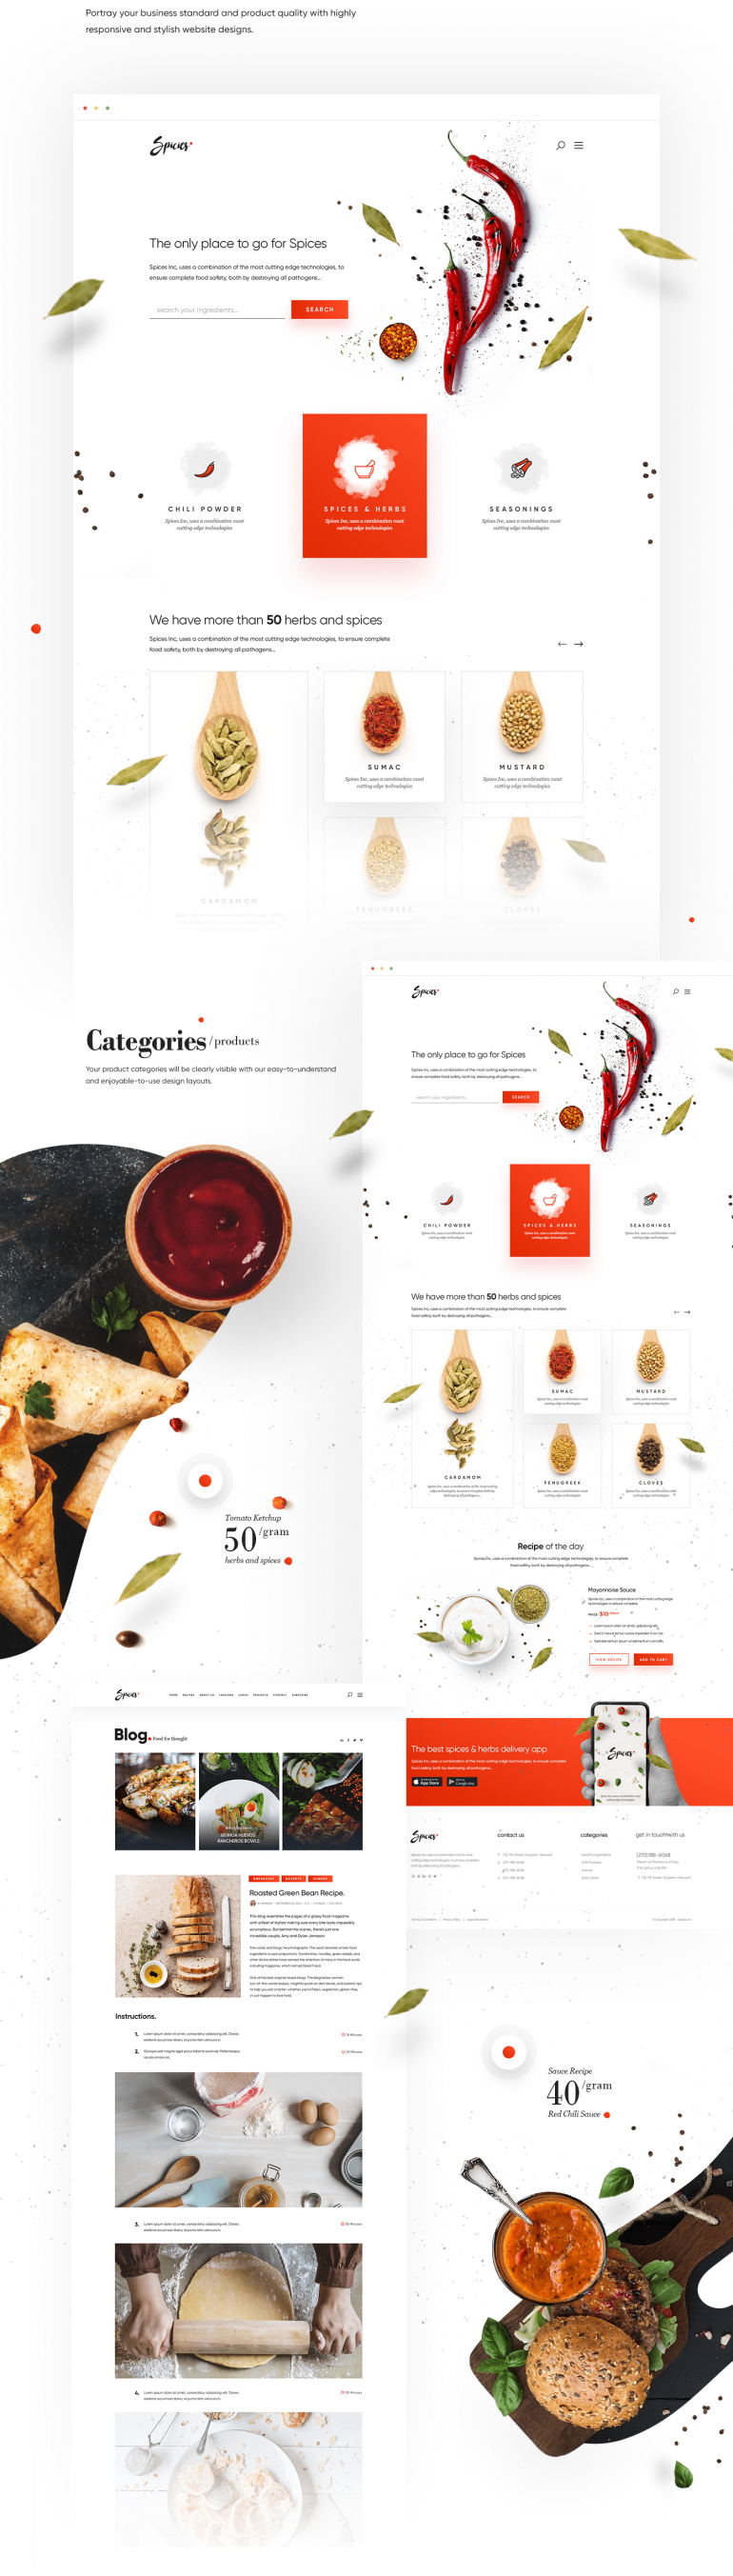 Recipes & Spice Website and Branding.